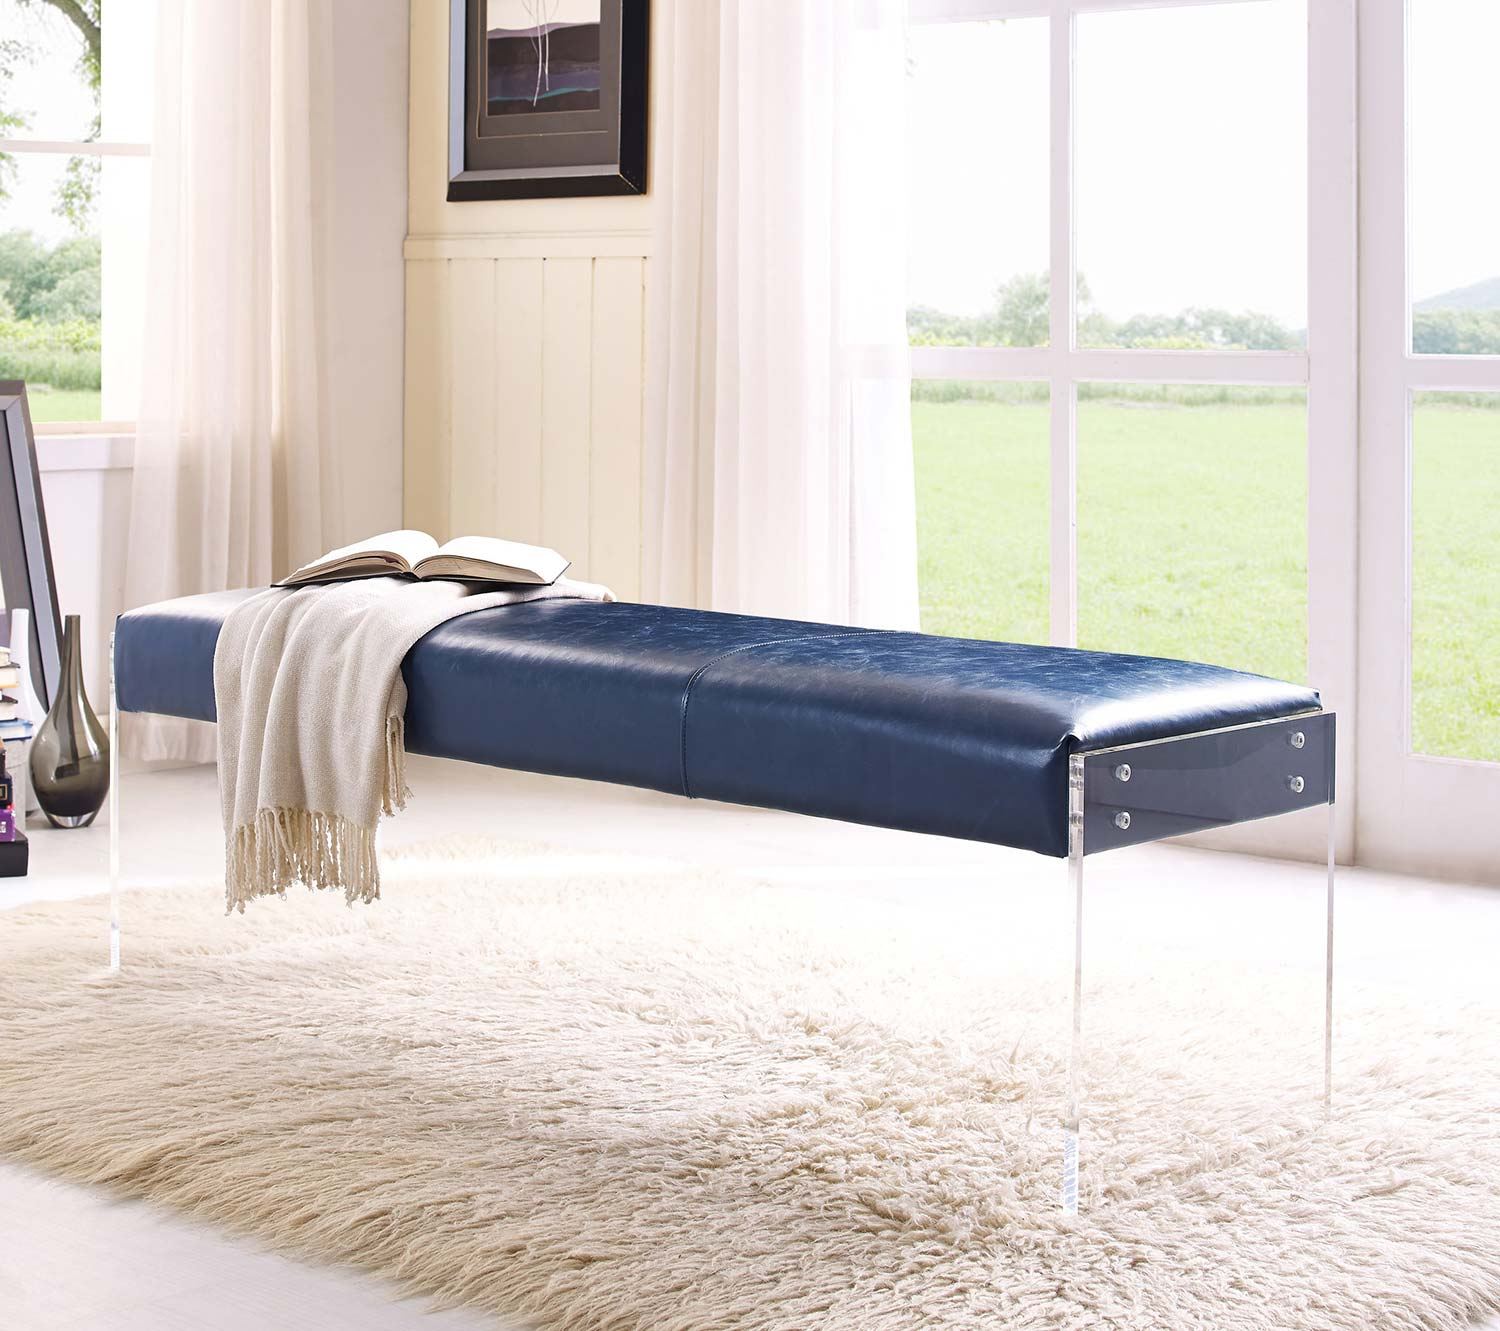 TOV Furniture Envy Leather/Acrylic Bench - Blue